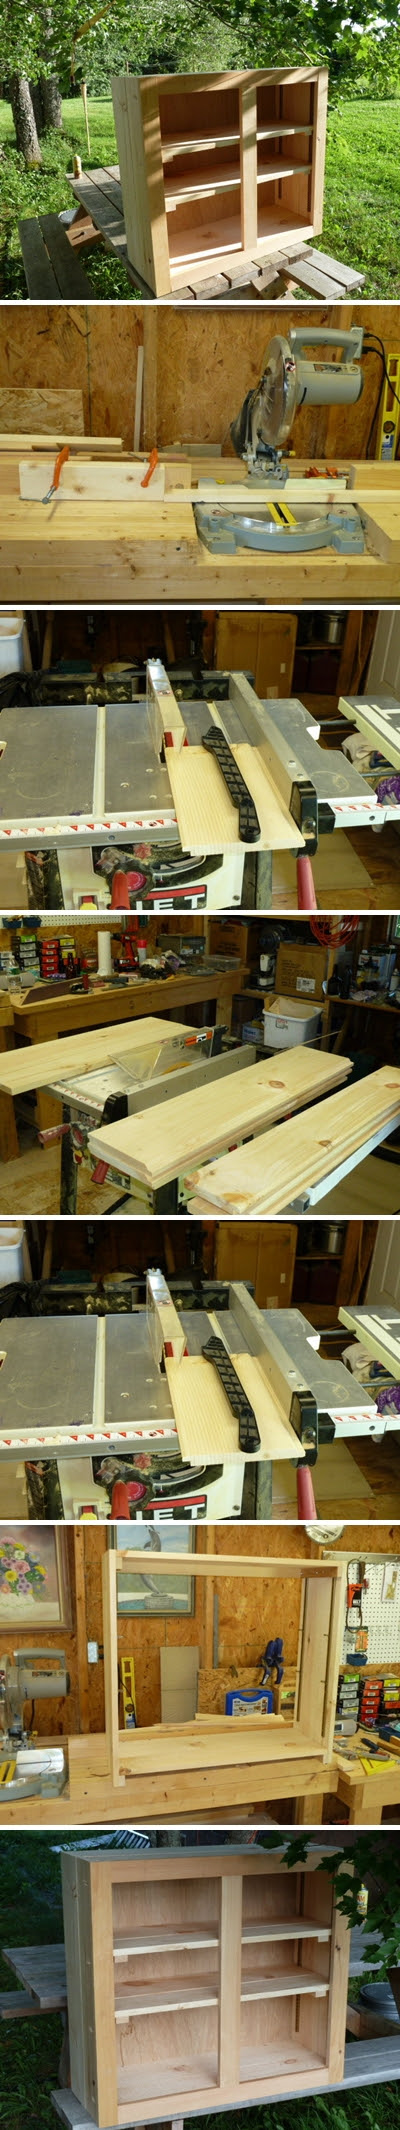 How to build your own kitchen cabinets step by step DIY ...